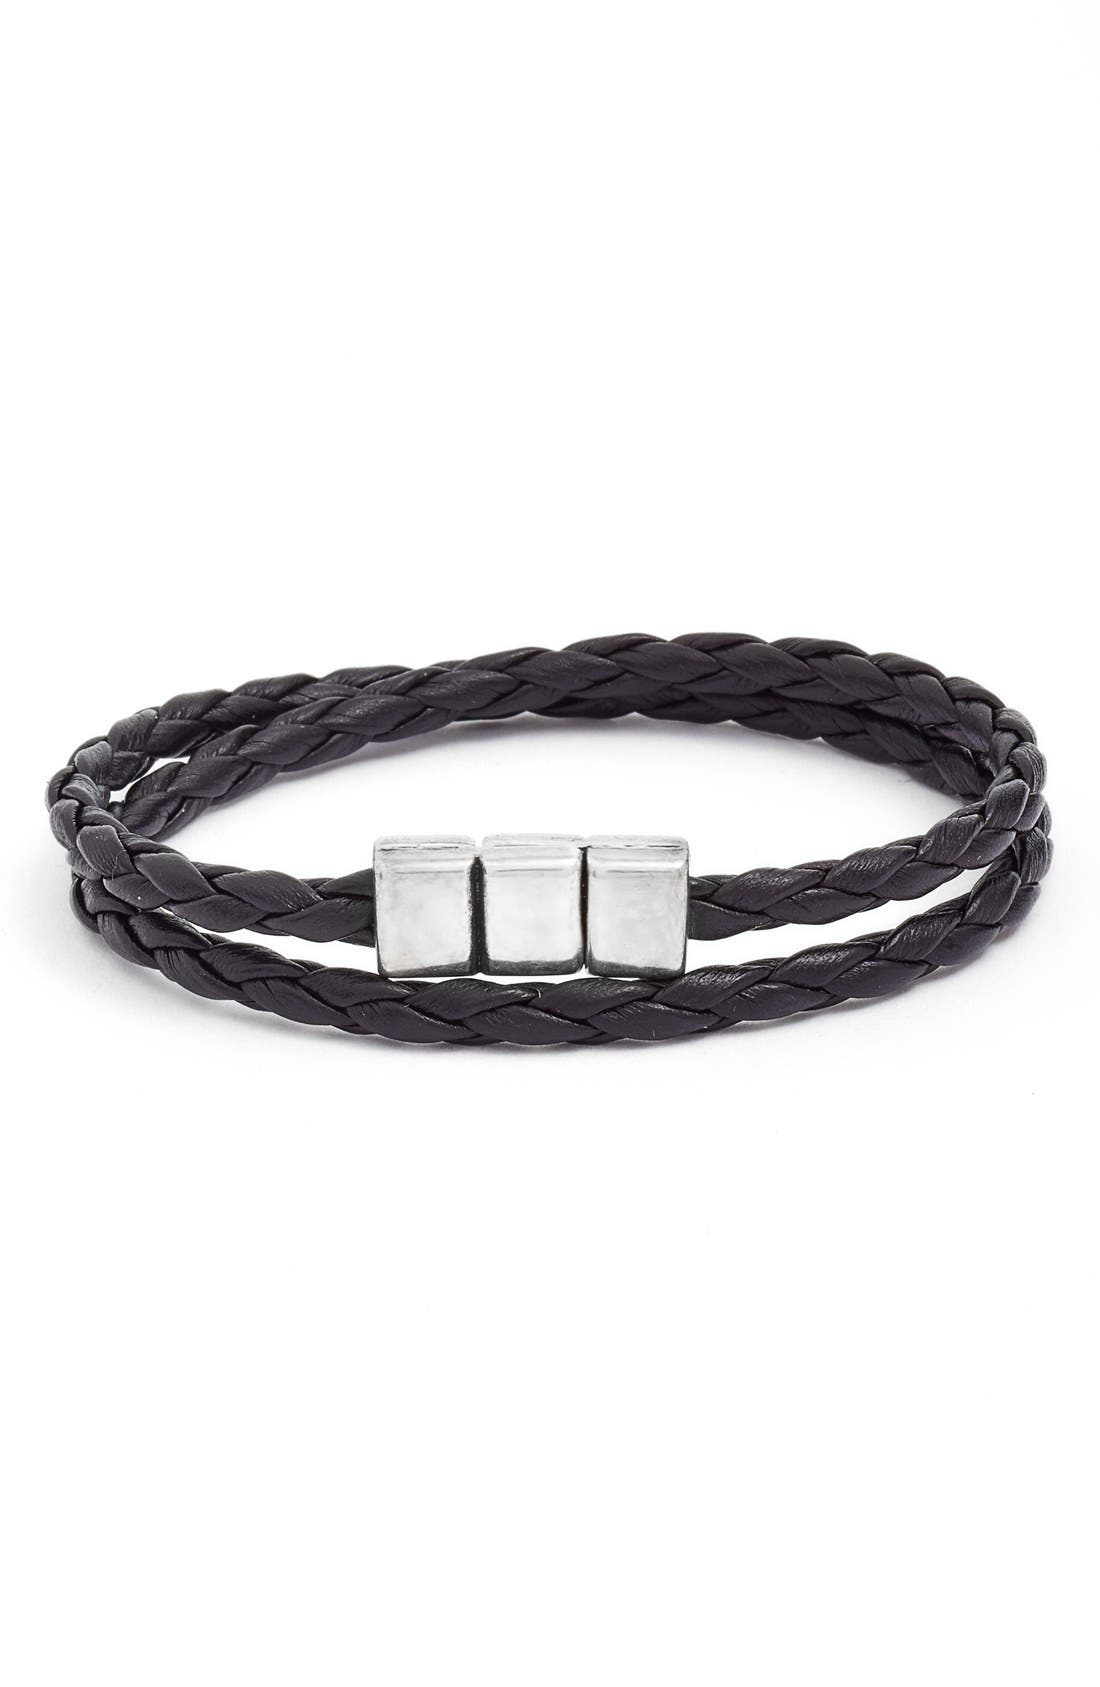 Braided Leather Wrap Bracelet,                             Main thumbnail 1, color,                             001